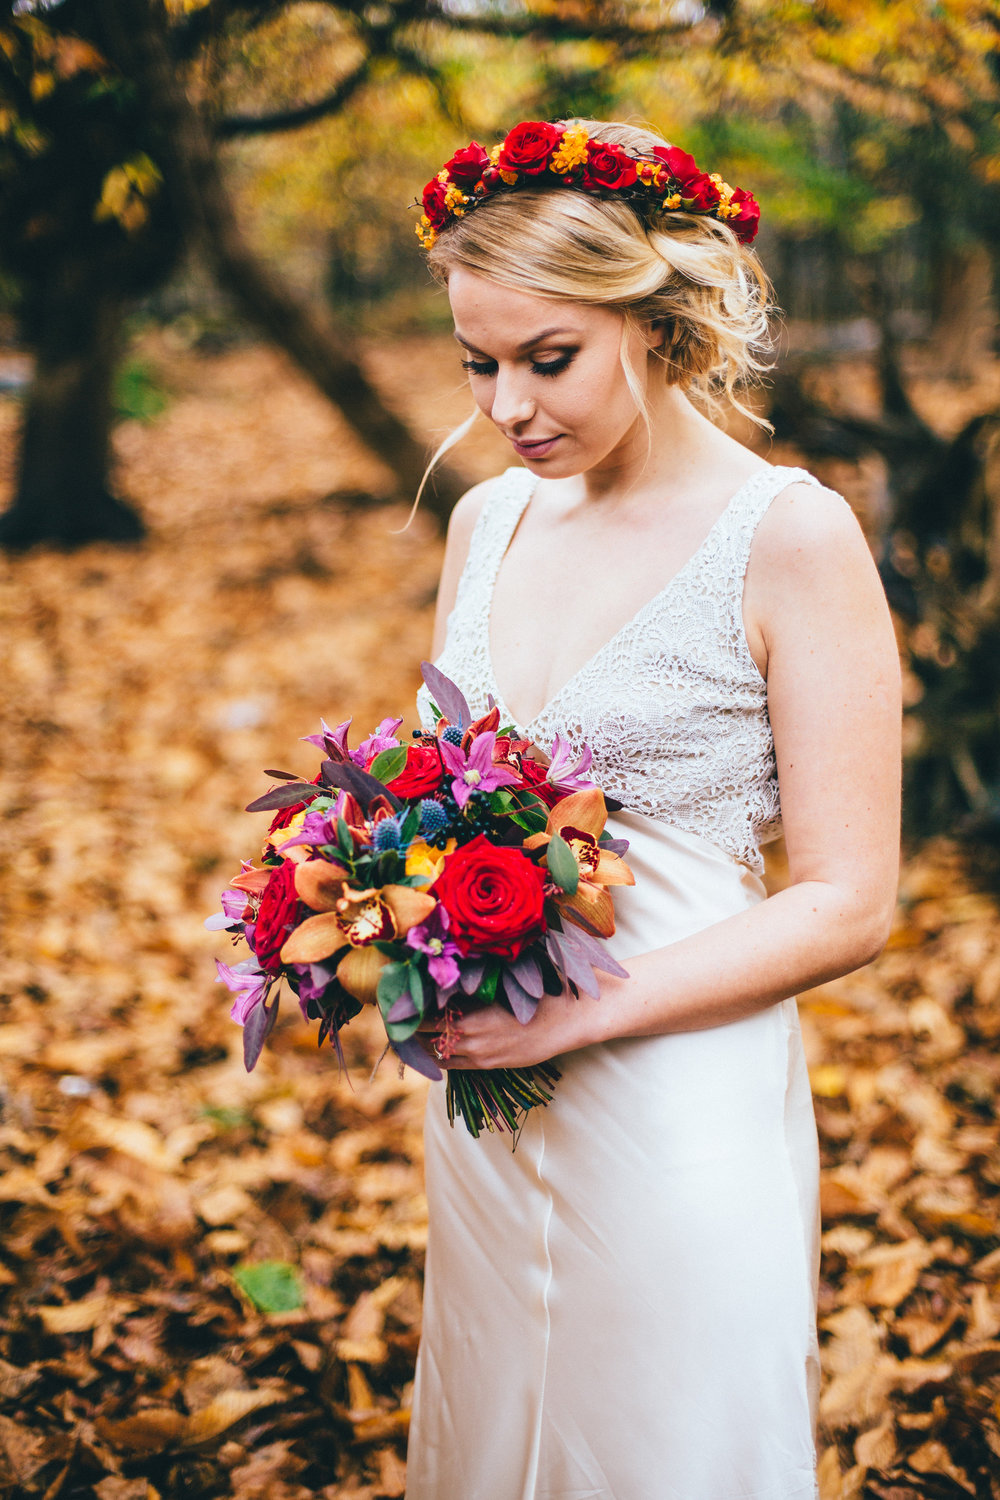 Kate-Beaumont-Wedding-Dresses-Autumn-Shoot-Rebecca-Tovey-1.jpg